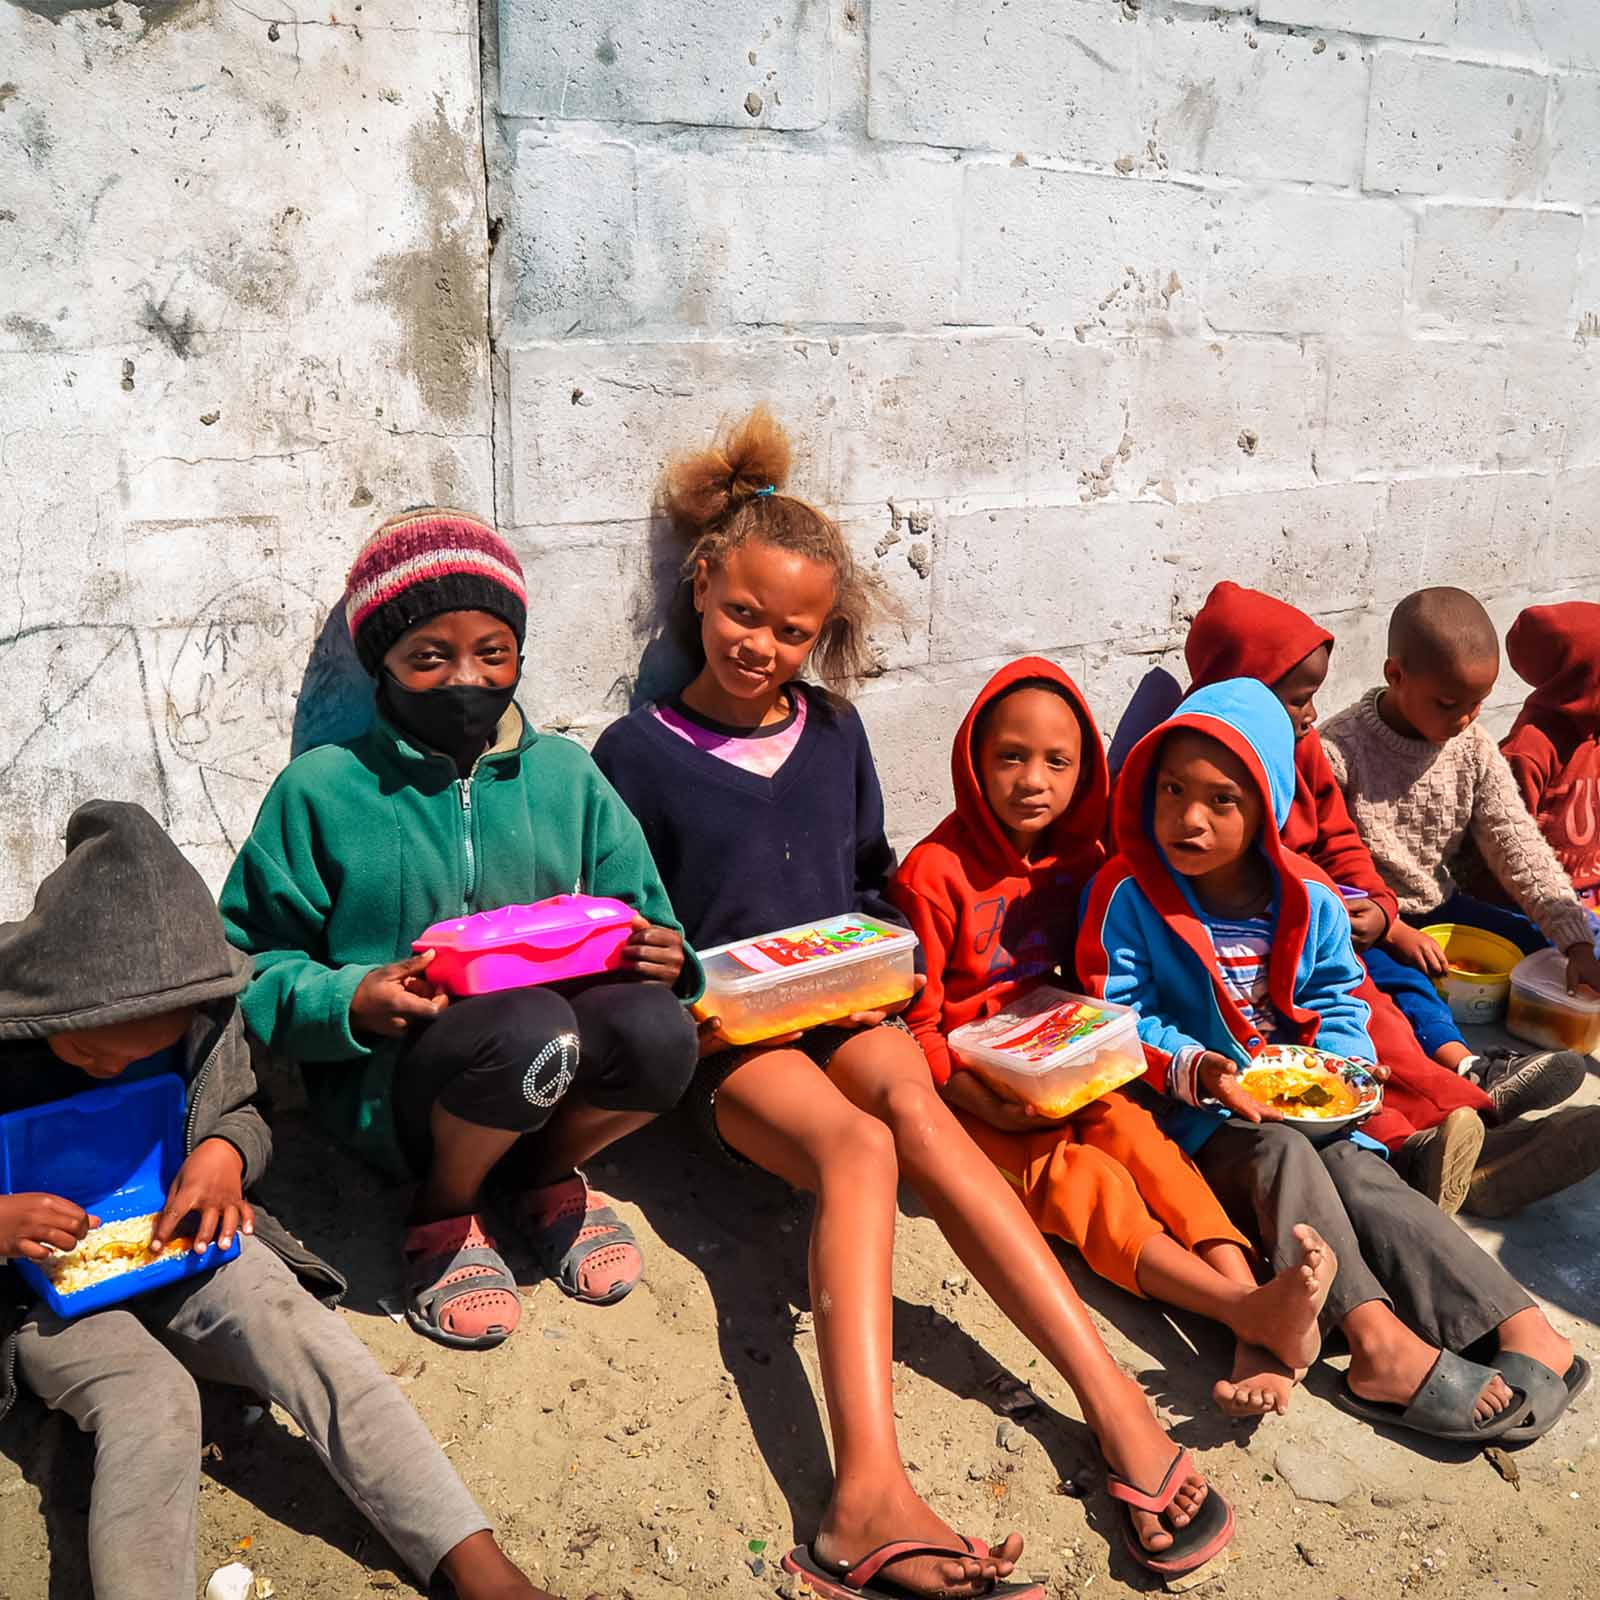 a line of hungry young children from poor areas in Cape Town who rely on sustainable living charities to help grow more food for their meals